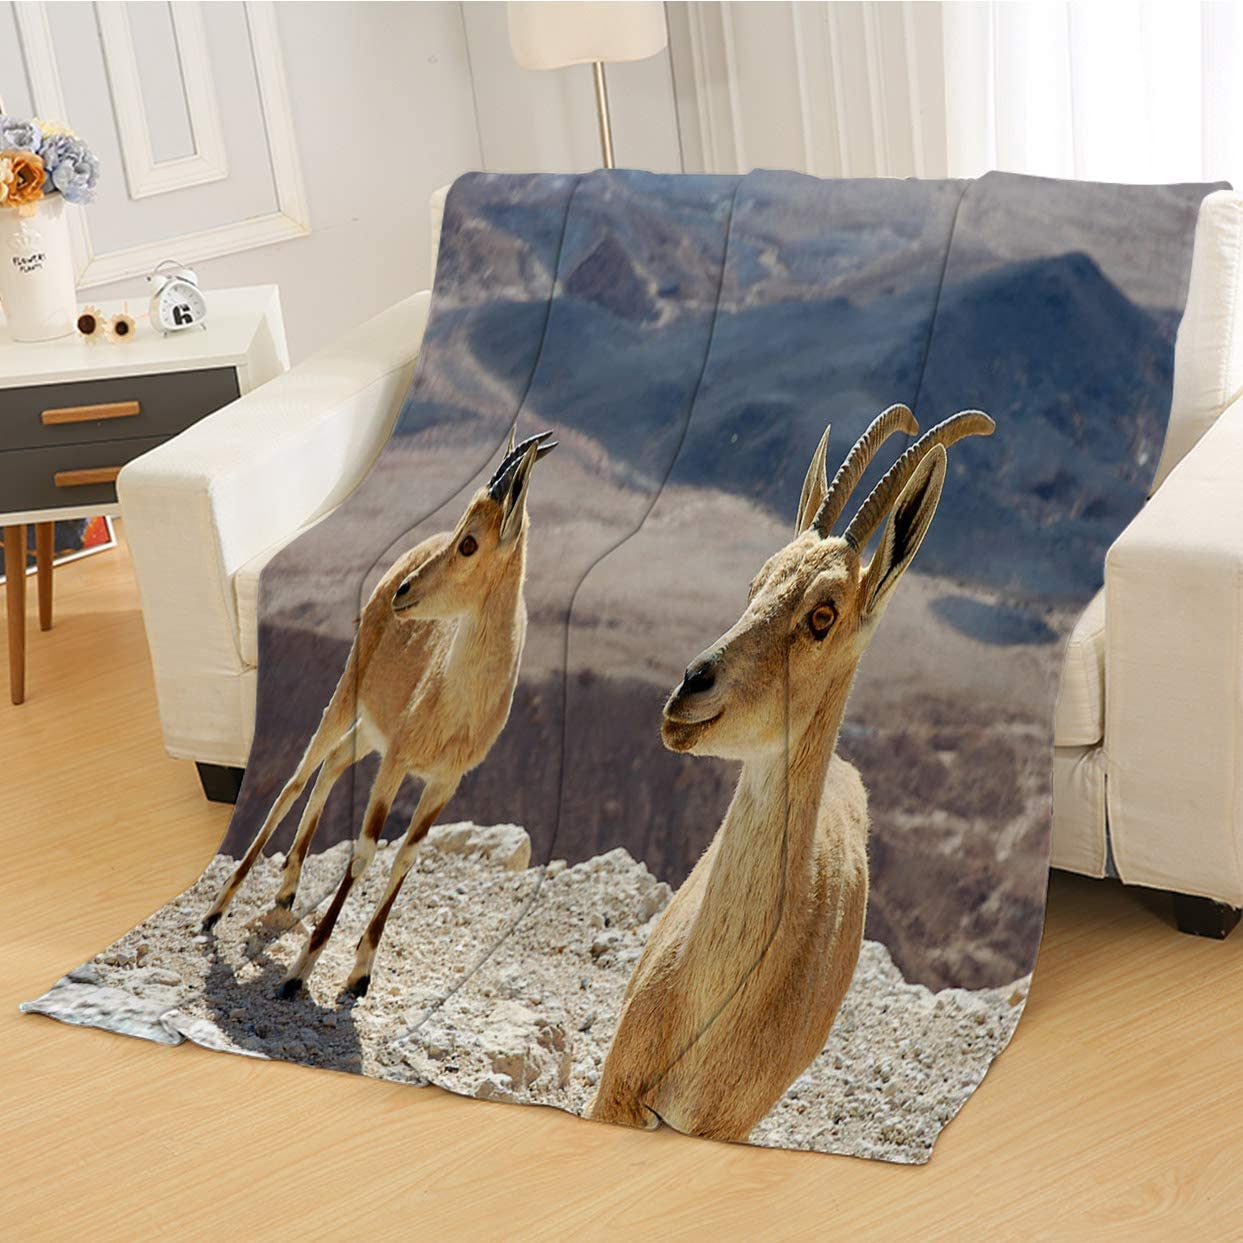 RLDSESS Soft Baby Blanket, All Season Blanket,Two Ibexes On The Cliff,Soft Weighted Blanket,Baby Size: 31Wx47L inch